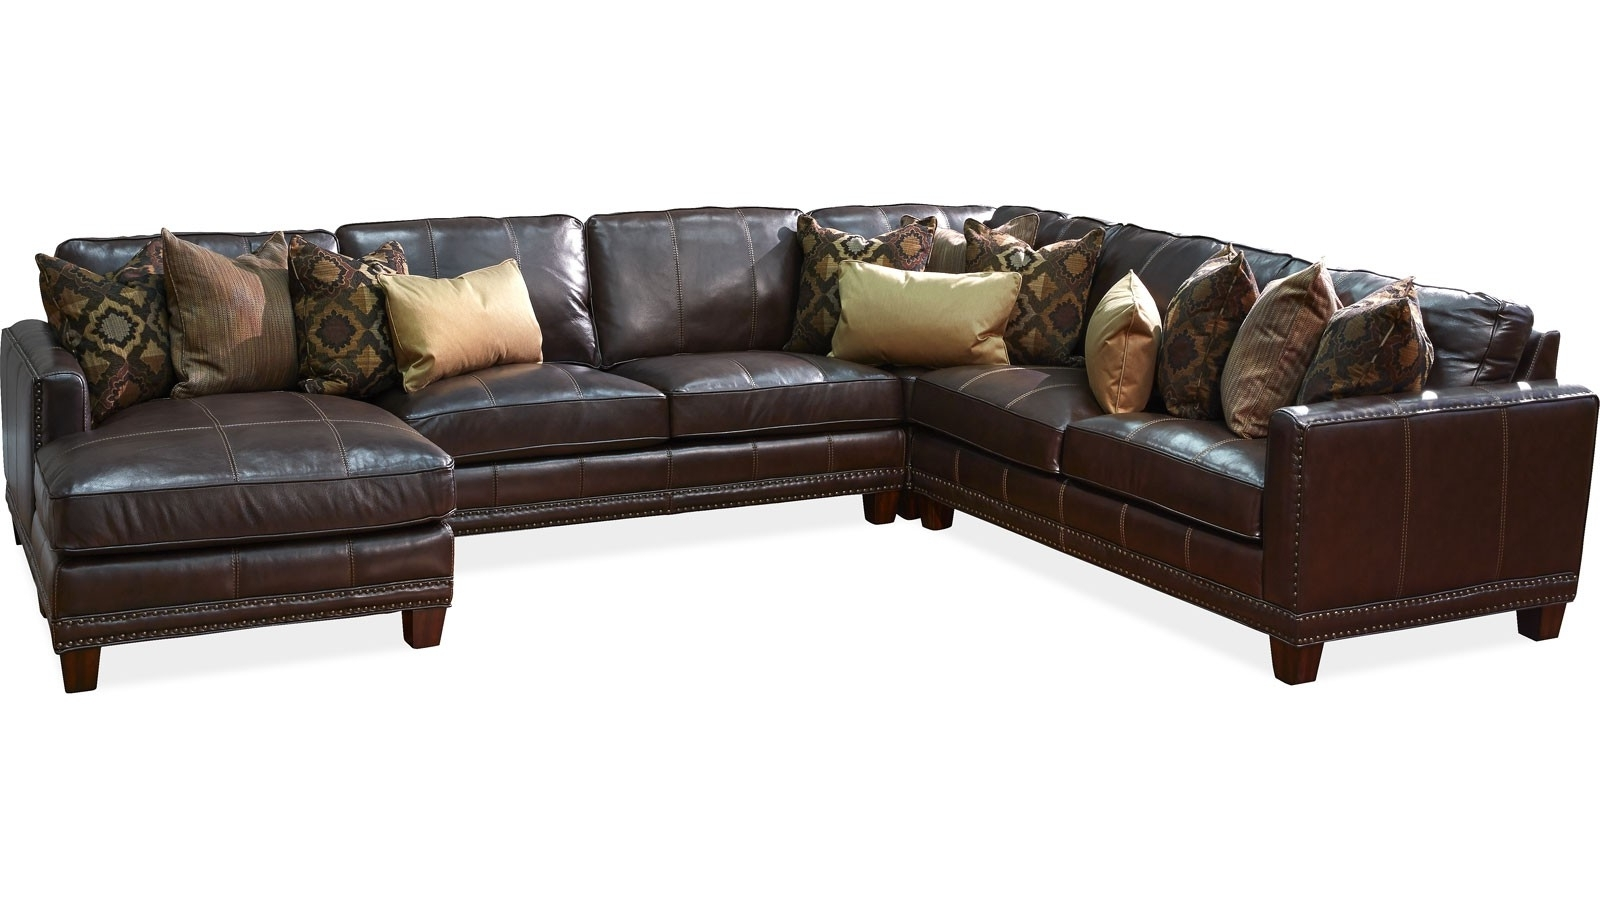 Gallery Furniture For Gallery Furniture Sectional Sofas (View 3 of 20)